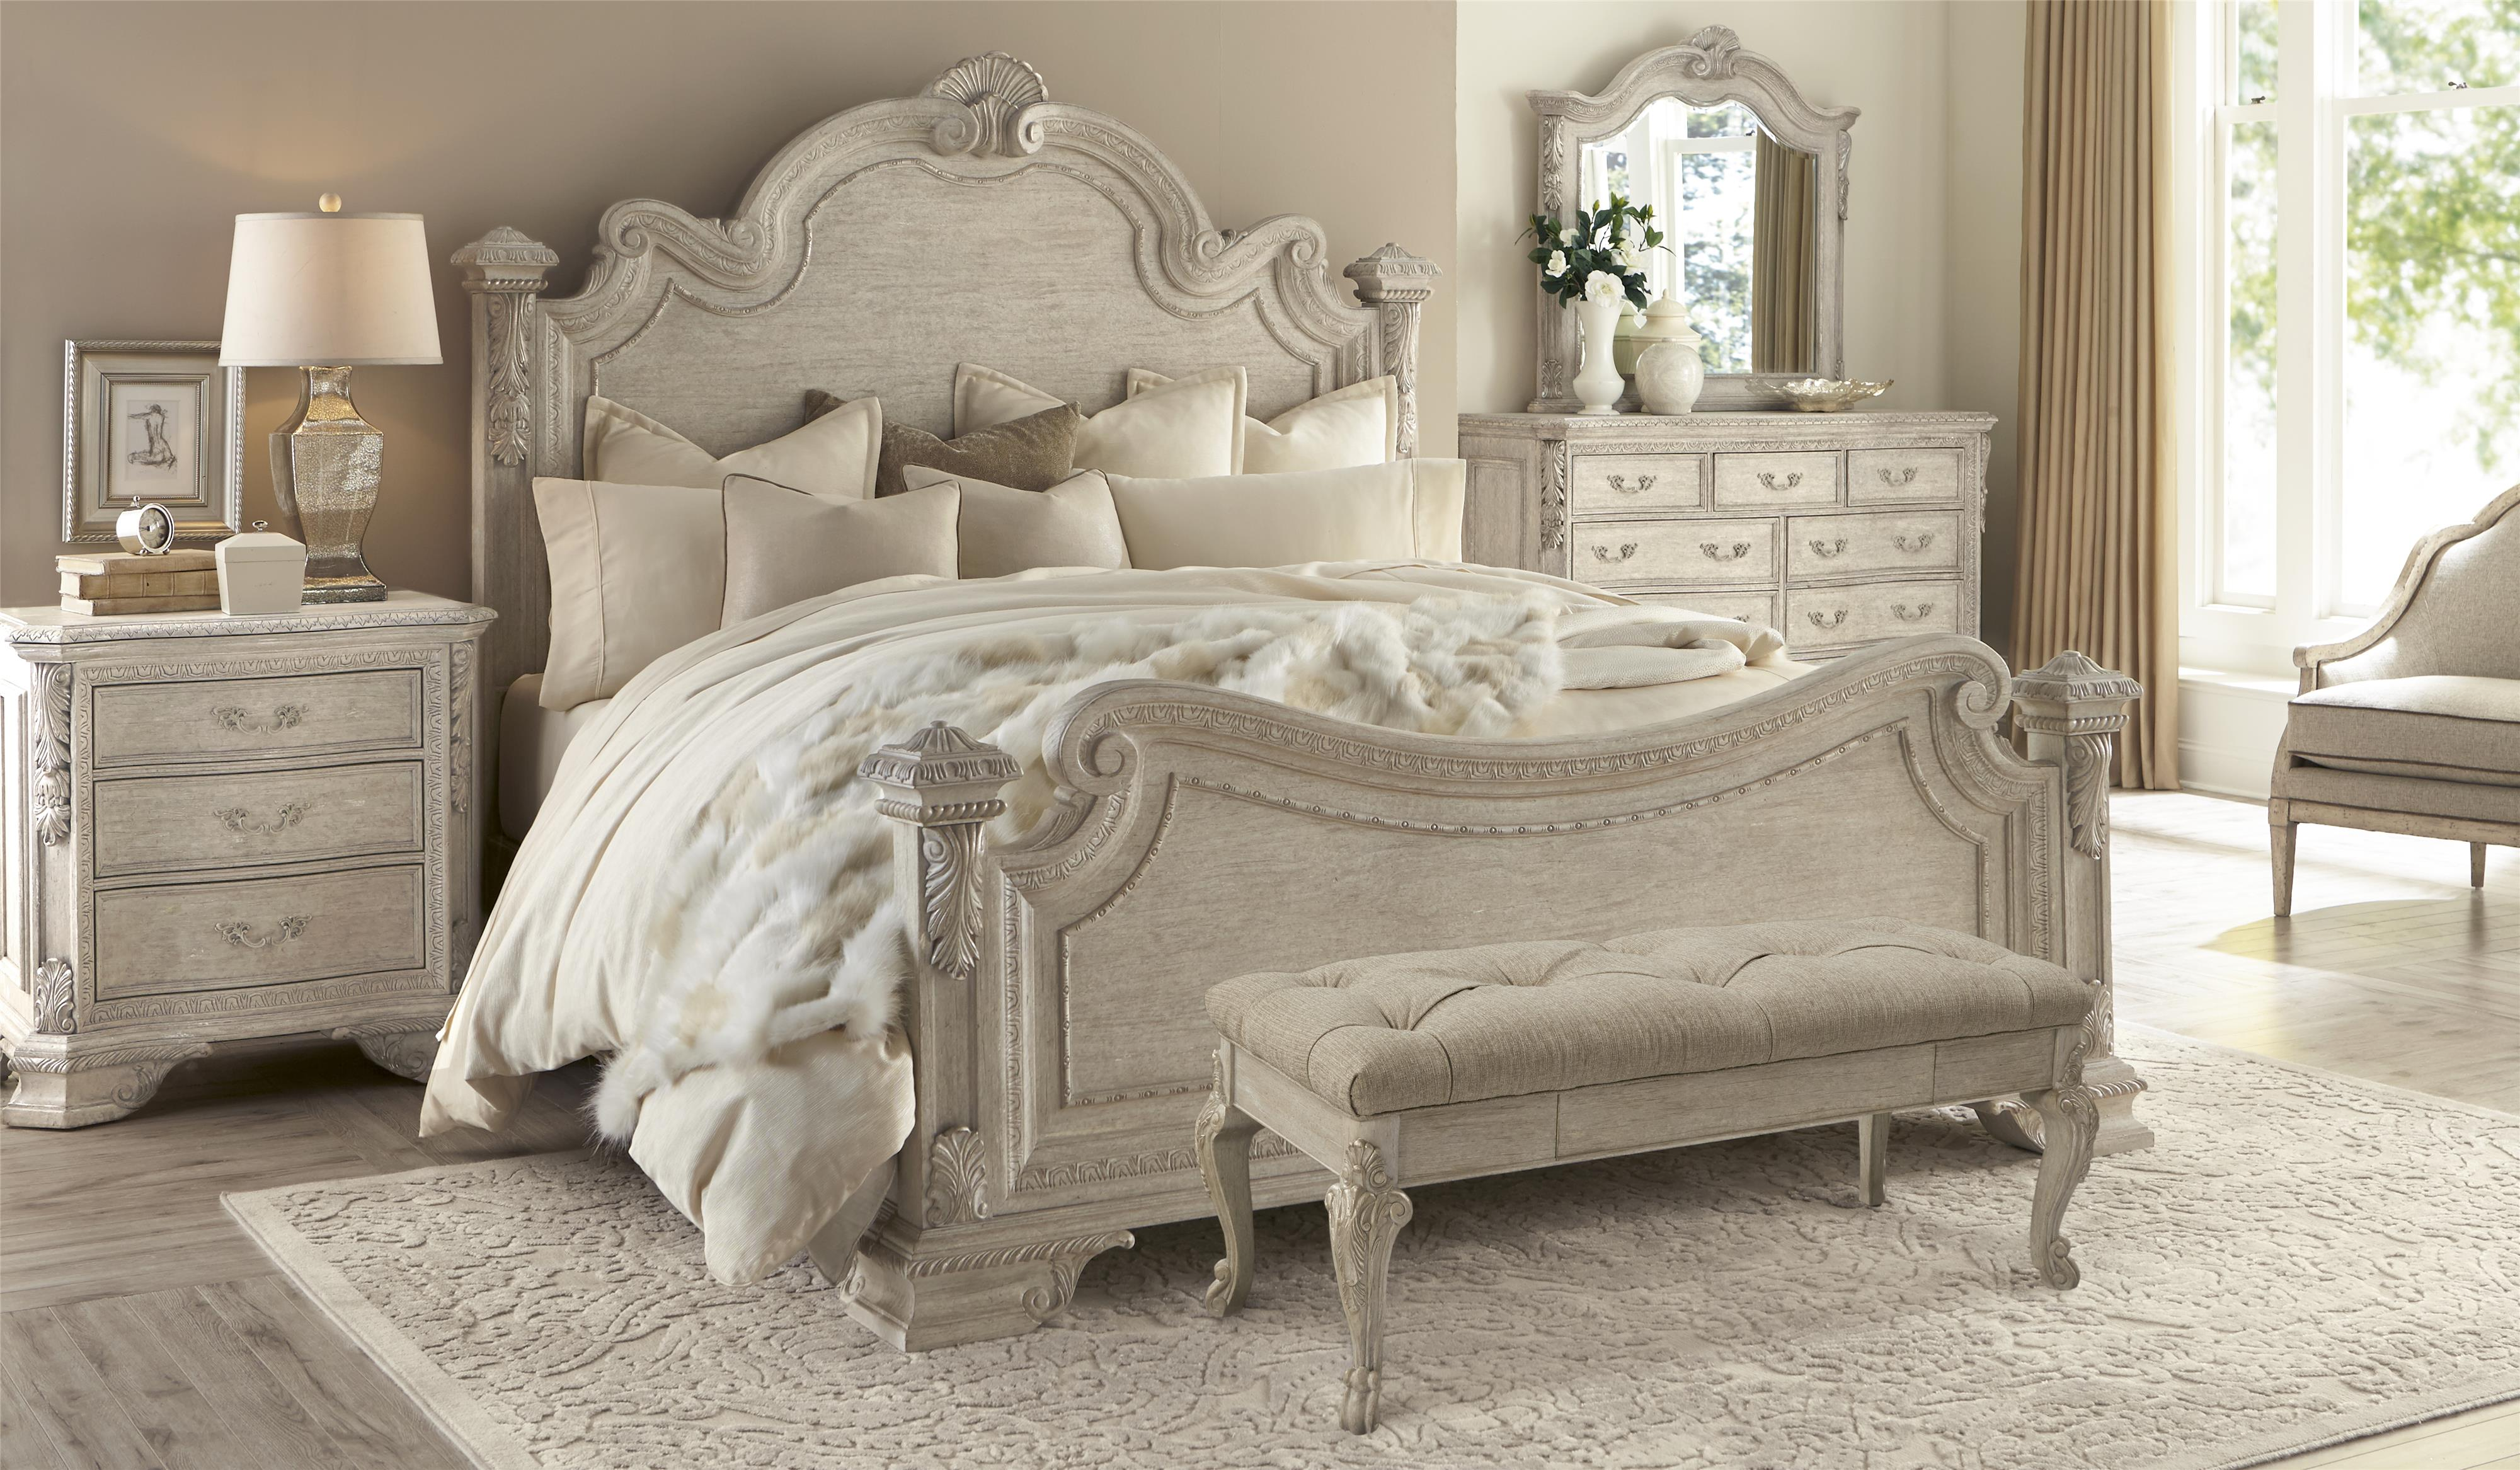 Traditional Bed Bench with Tufted Seat and Cabriole Legs by A.R.T. ...